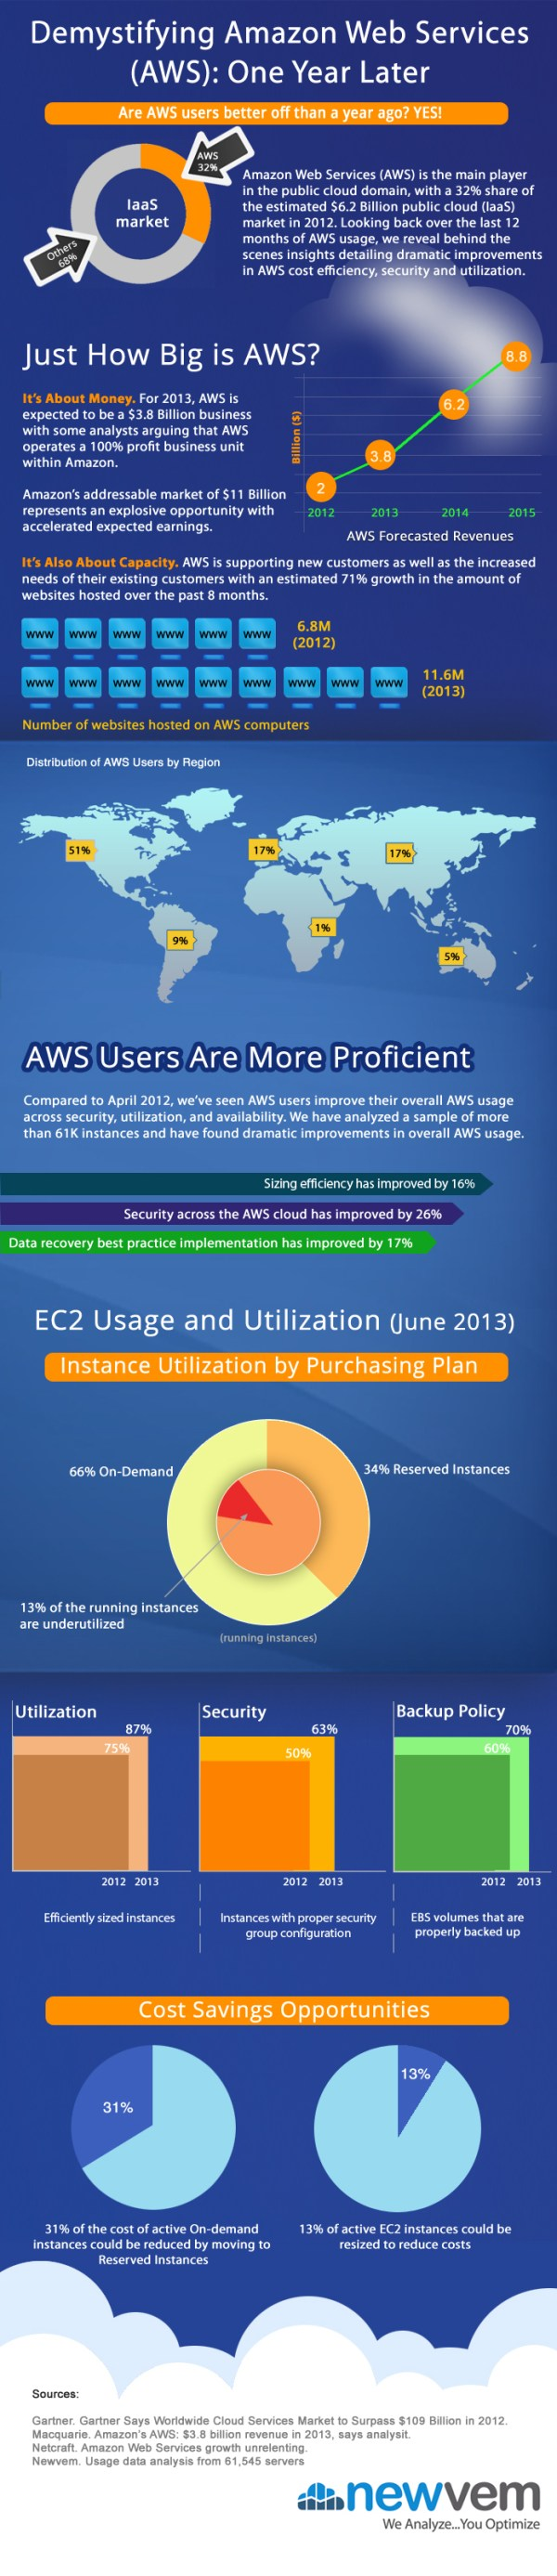 AWS Cloud Usage Improvements - One Year Later